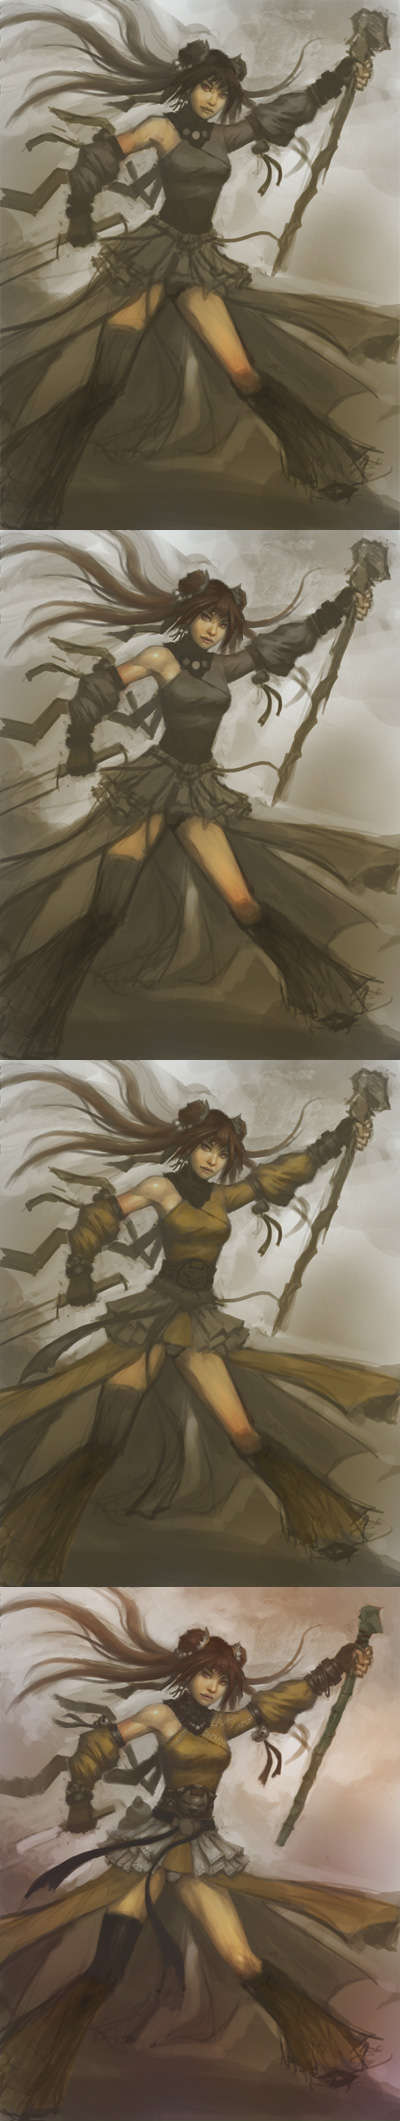 manga tutorial painting character Draw and paint female wizard step by step